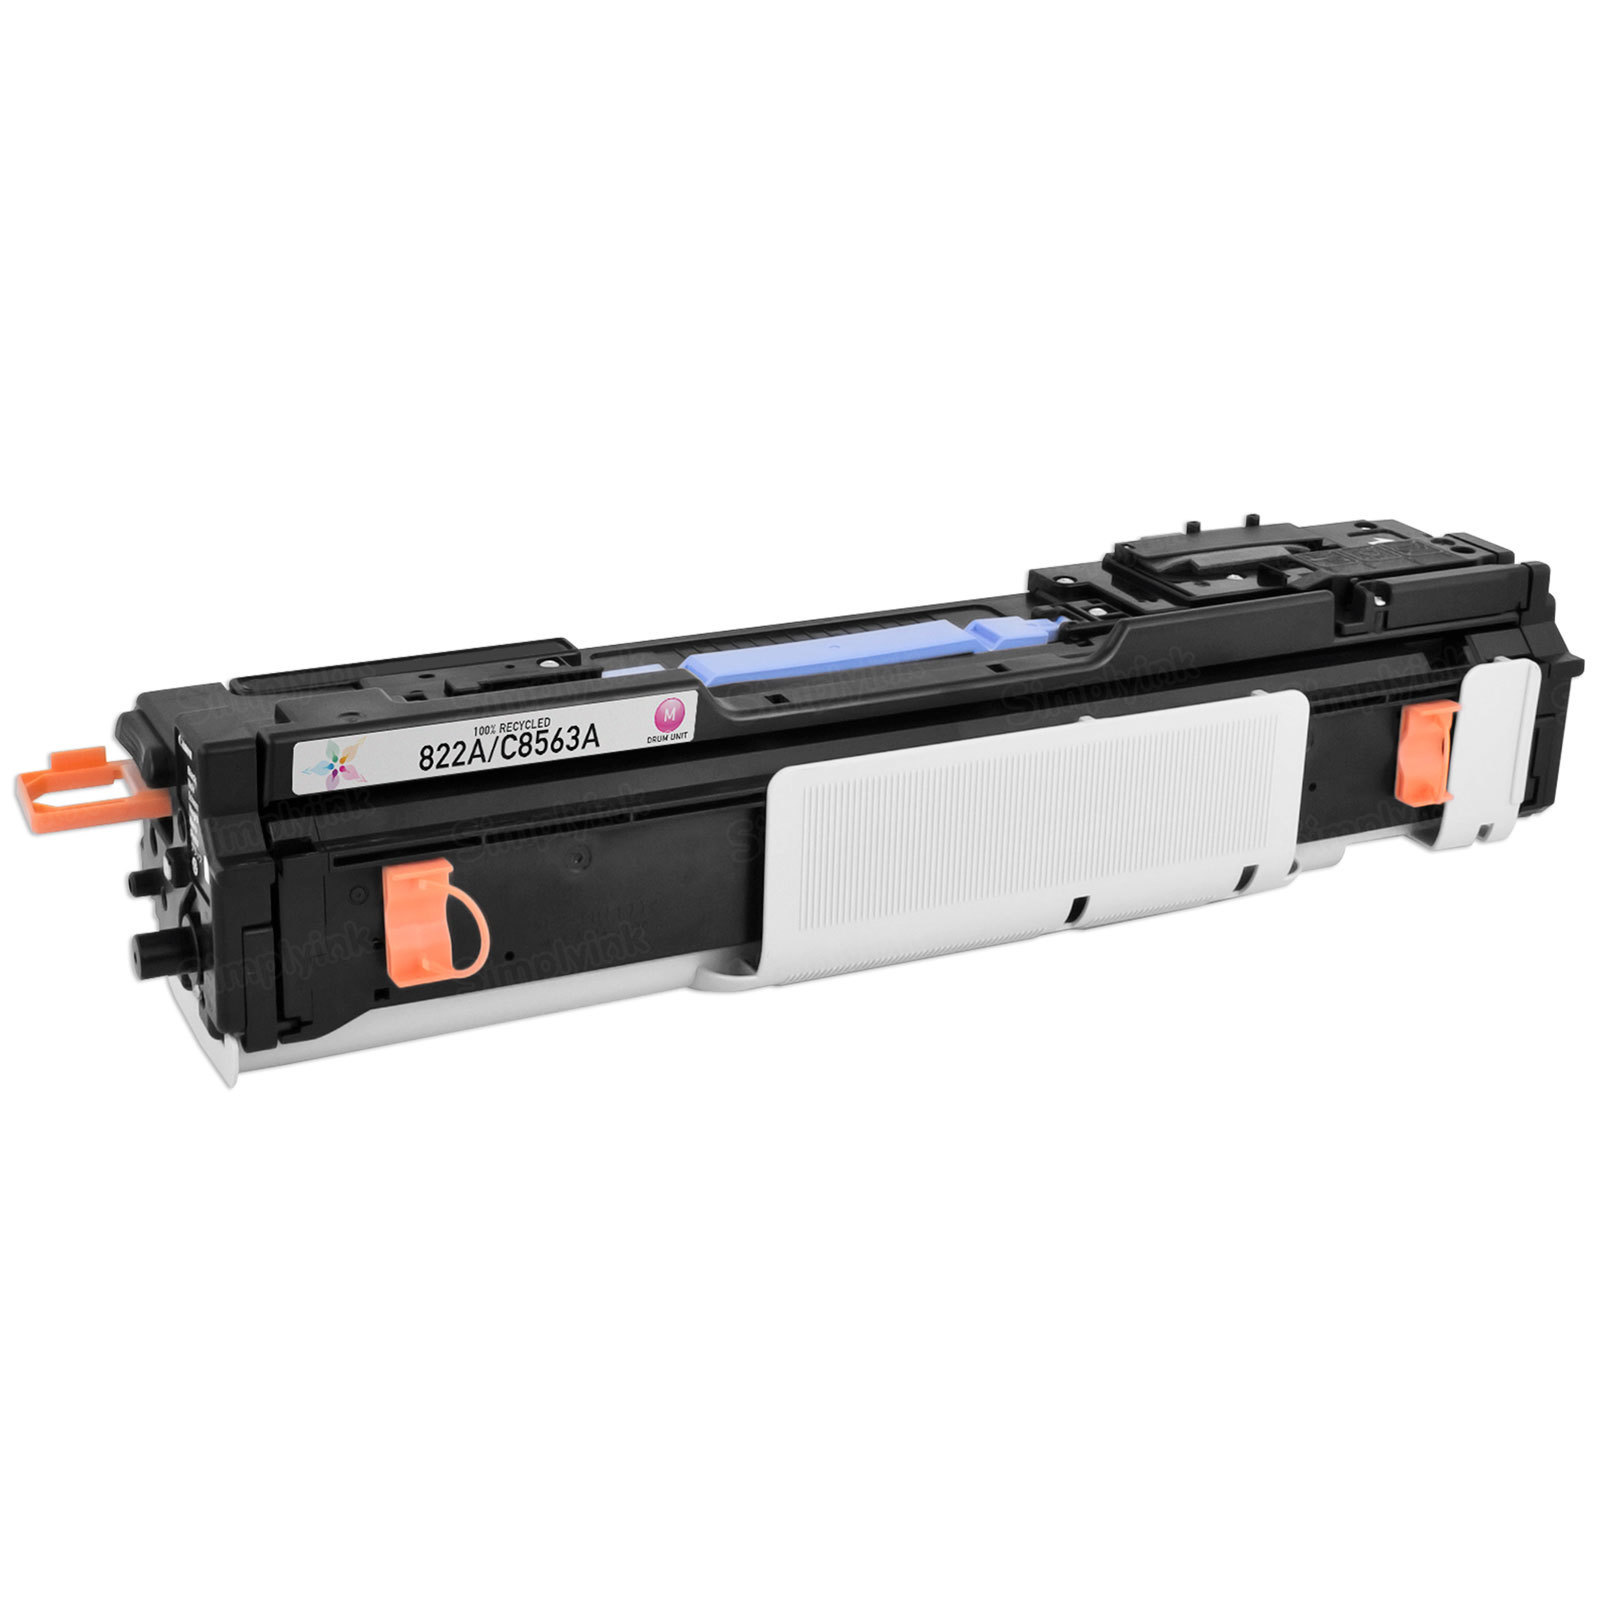 Remanufactured Replacement Magenta Laser Drum for HP 822A